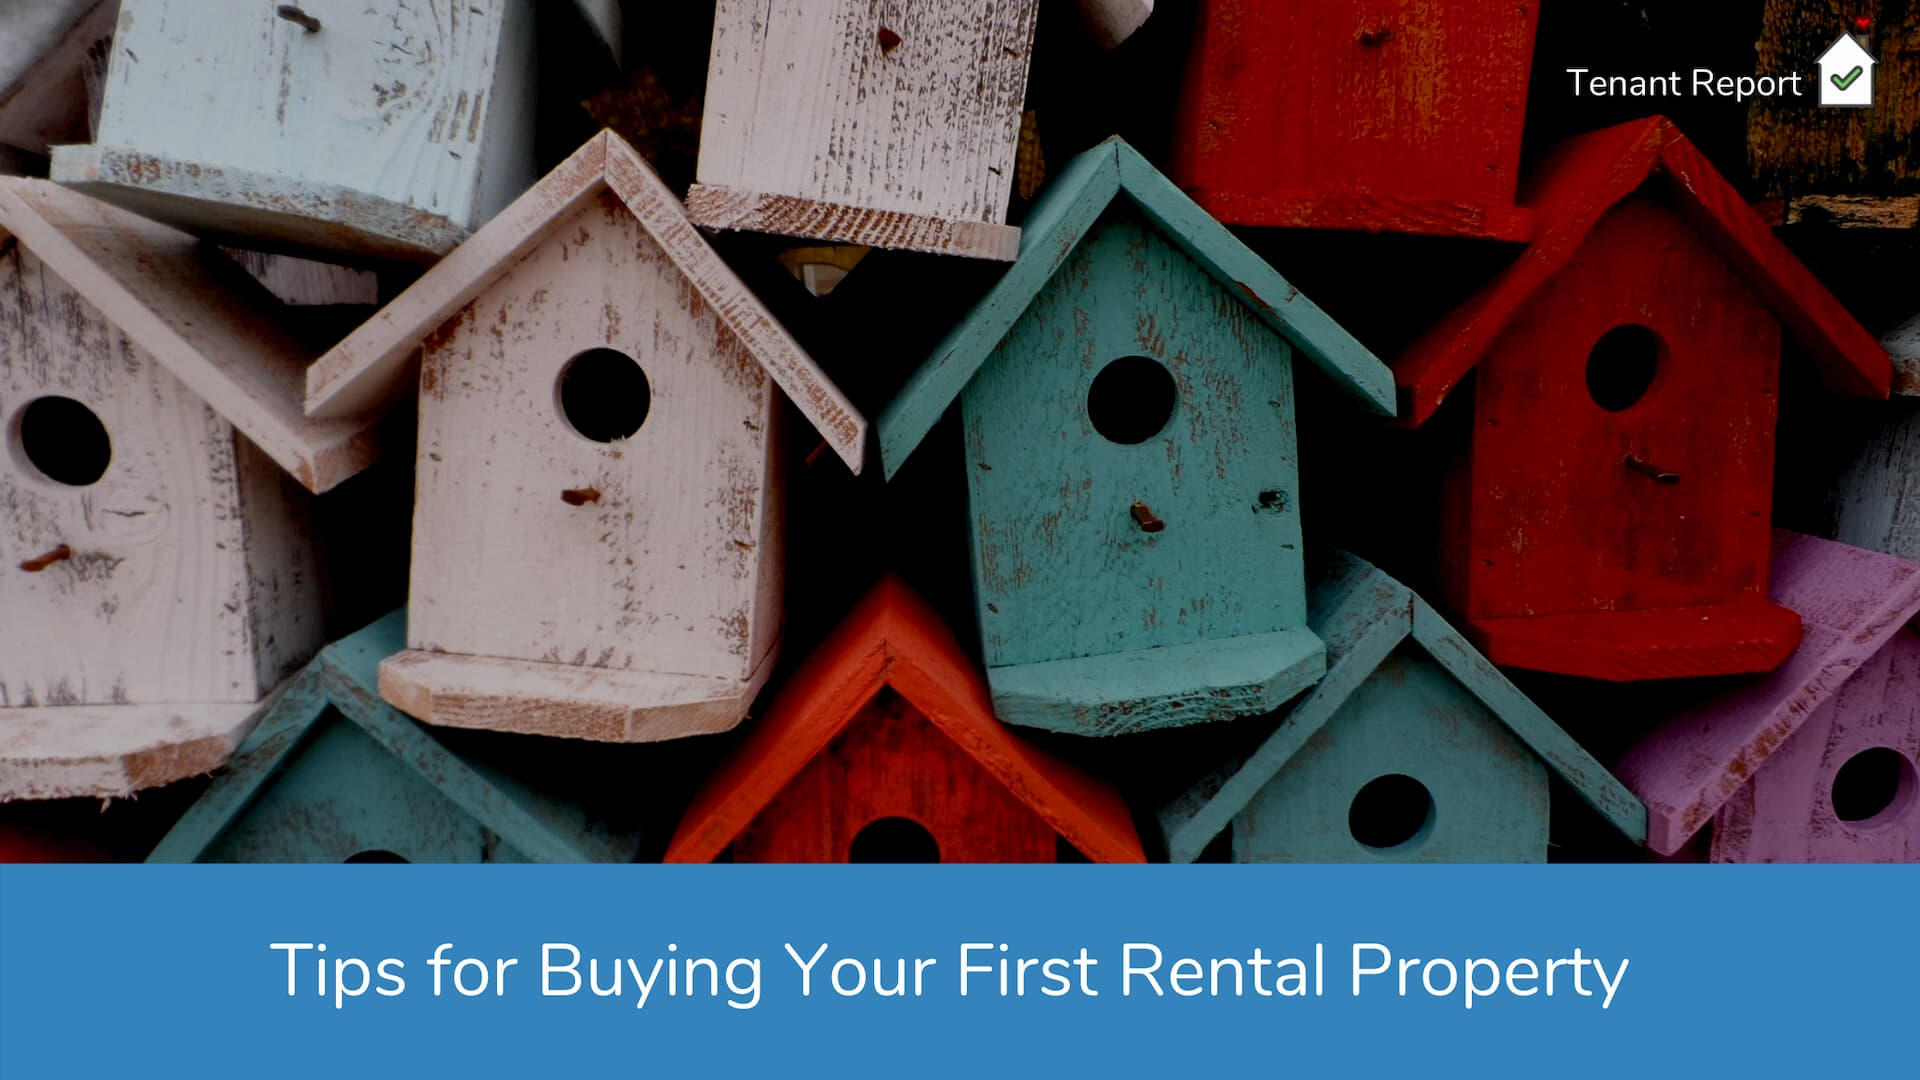 tenant-report-tips-for-buying-your-first-rental-property